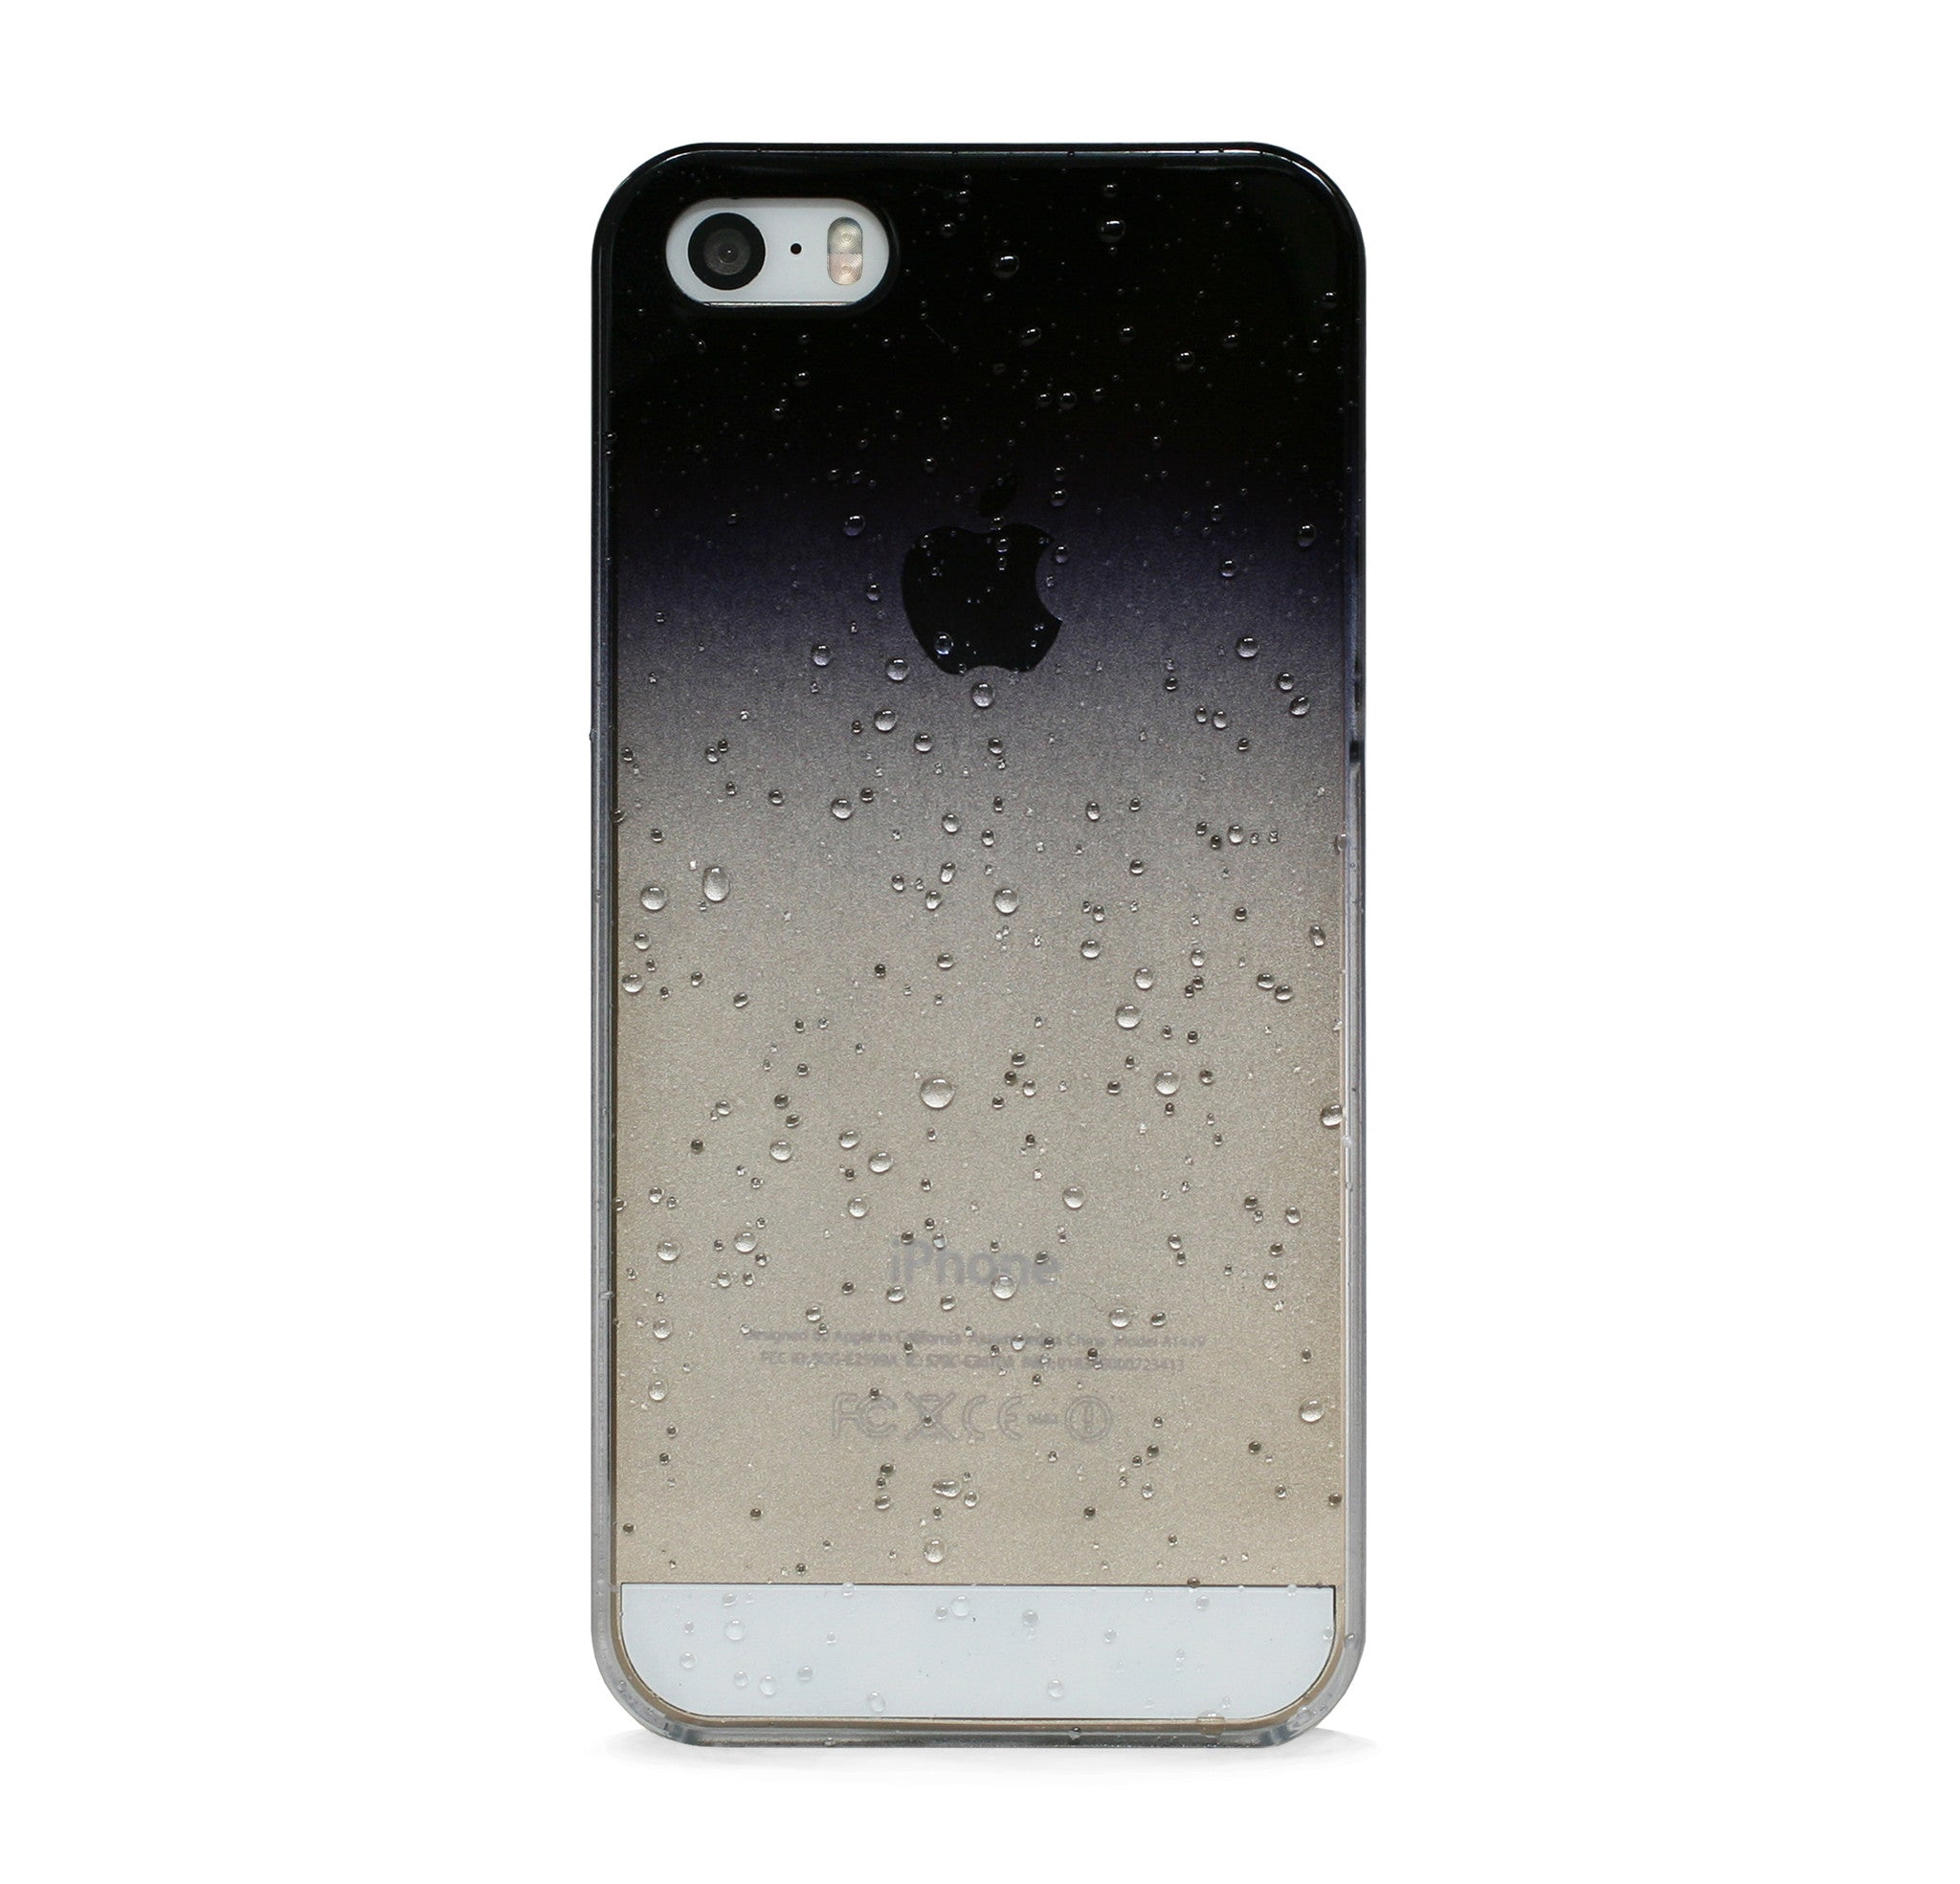 GRADIENT iPhone 5 & iPhone 5s CASE A.K.A SWEATING IPHONE COVER